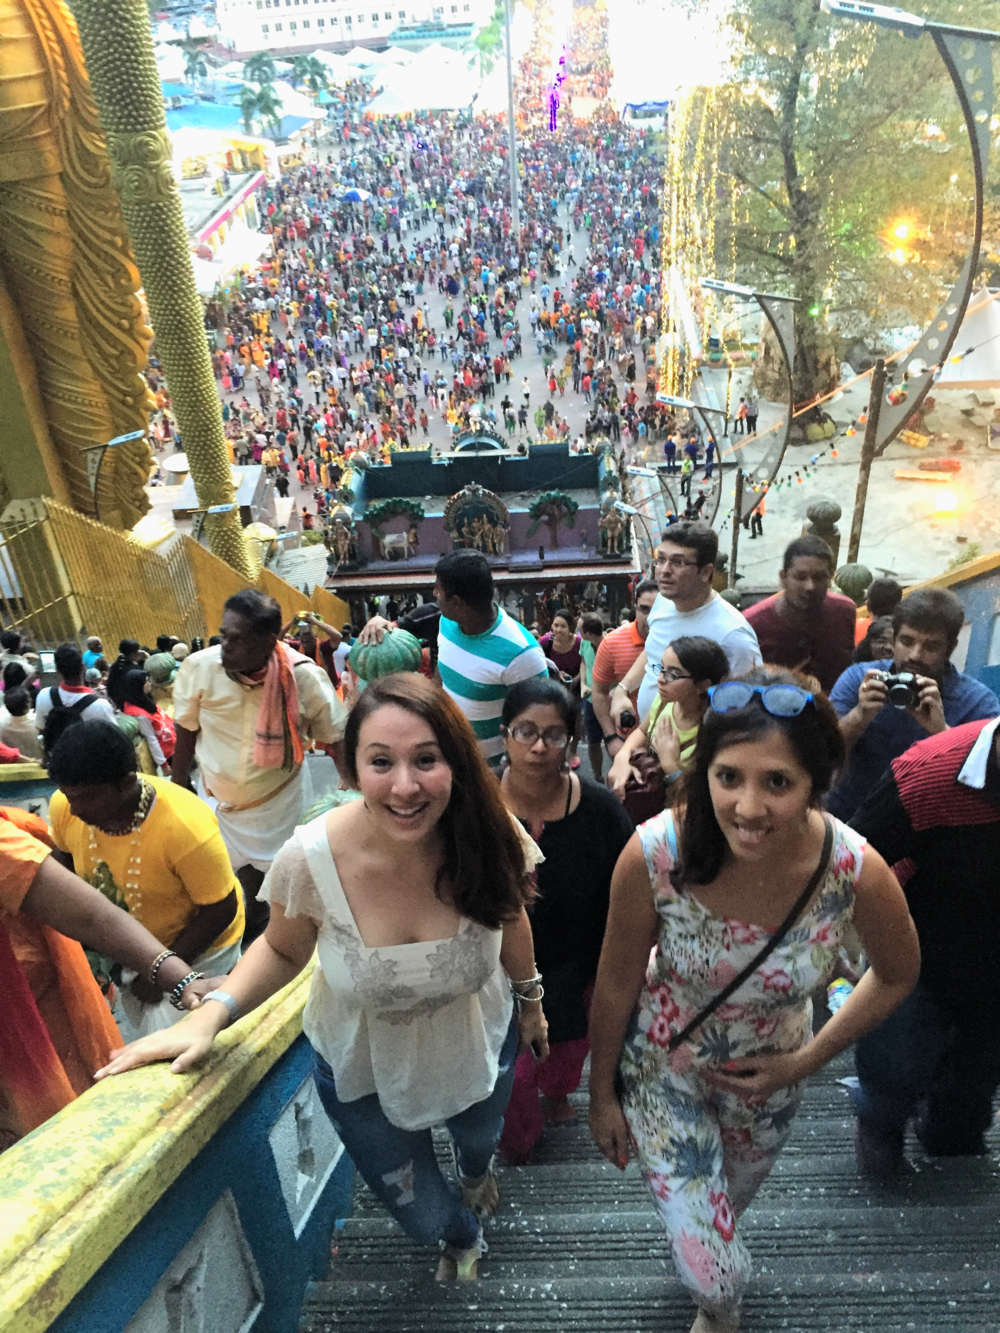 Farena & I making our way up to Batu Caves - only a hundred steps or more to go ;)